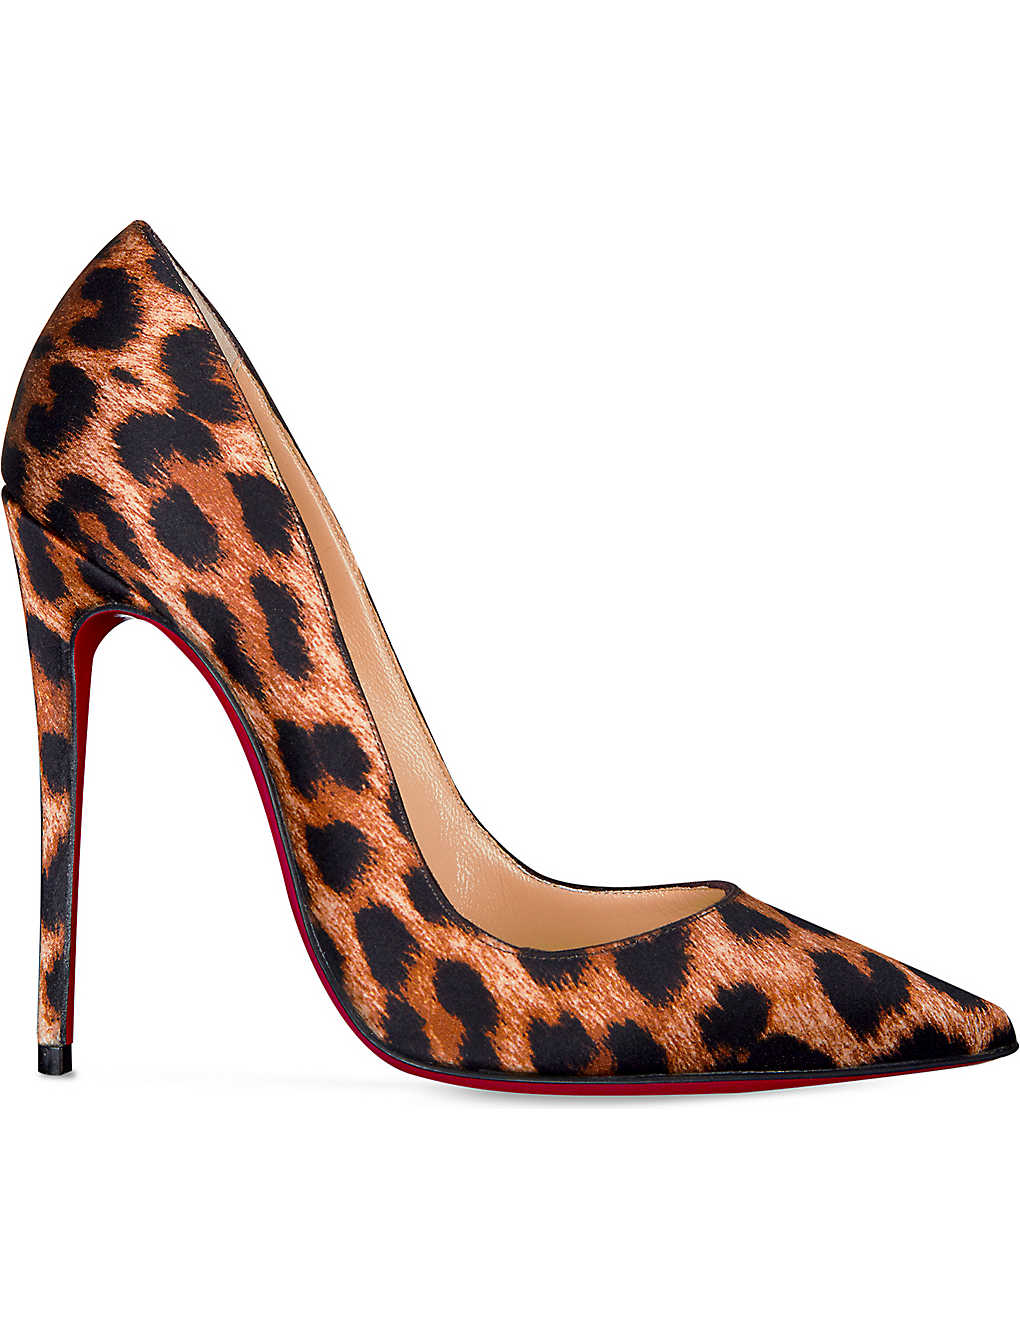 7b36e16d7855 CHRISTIAN LOUBOUTIN - So Kate 120 crepe satin leopard